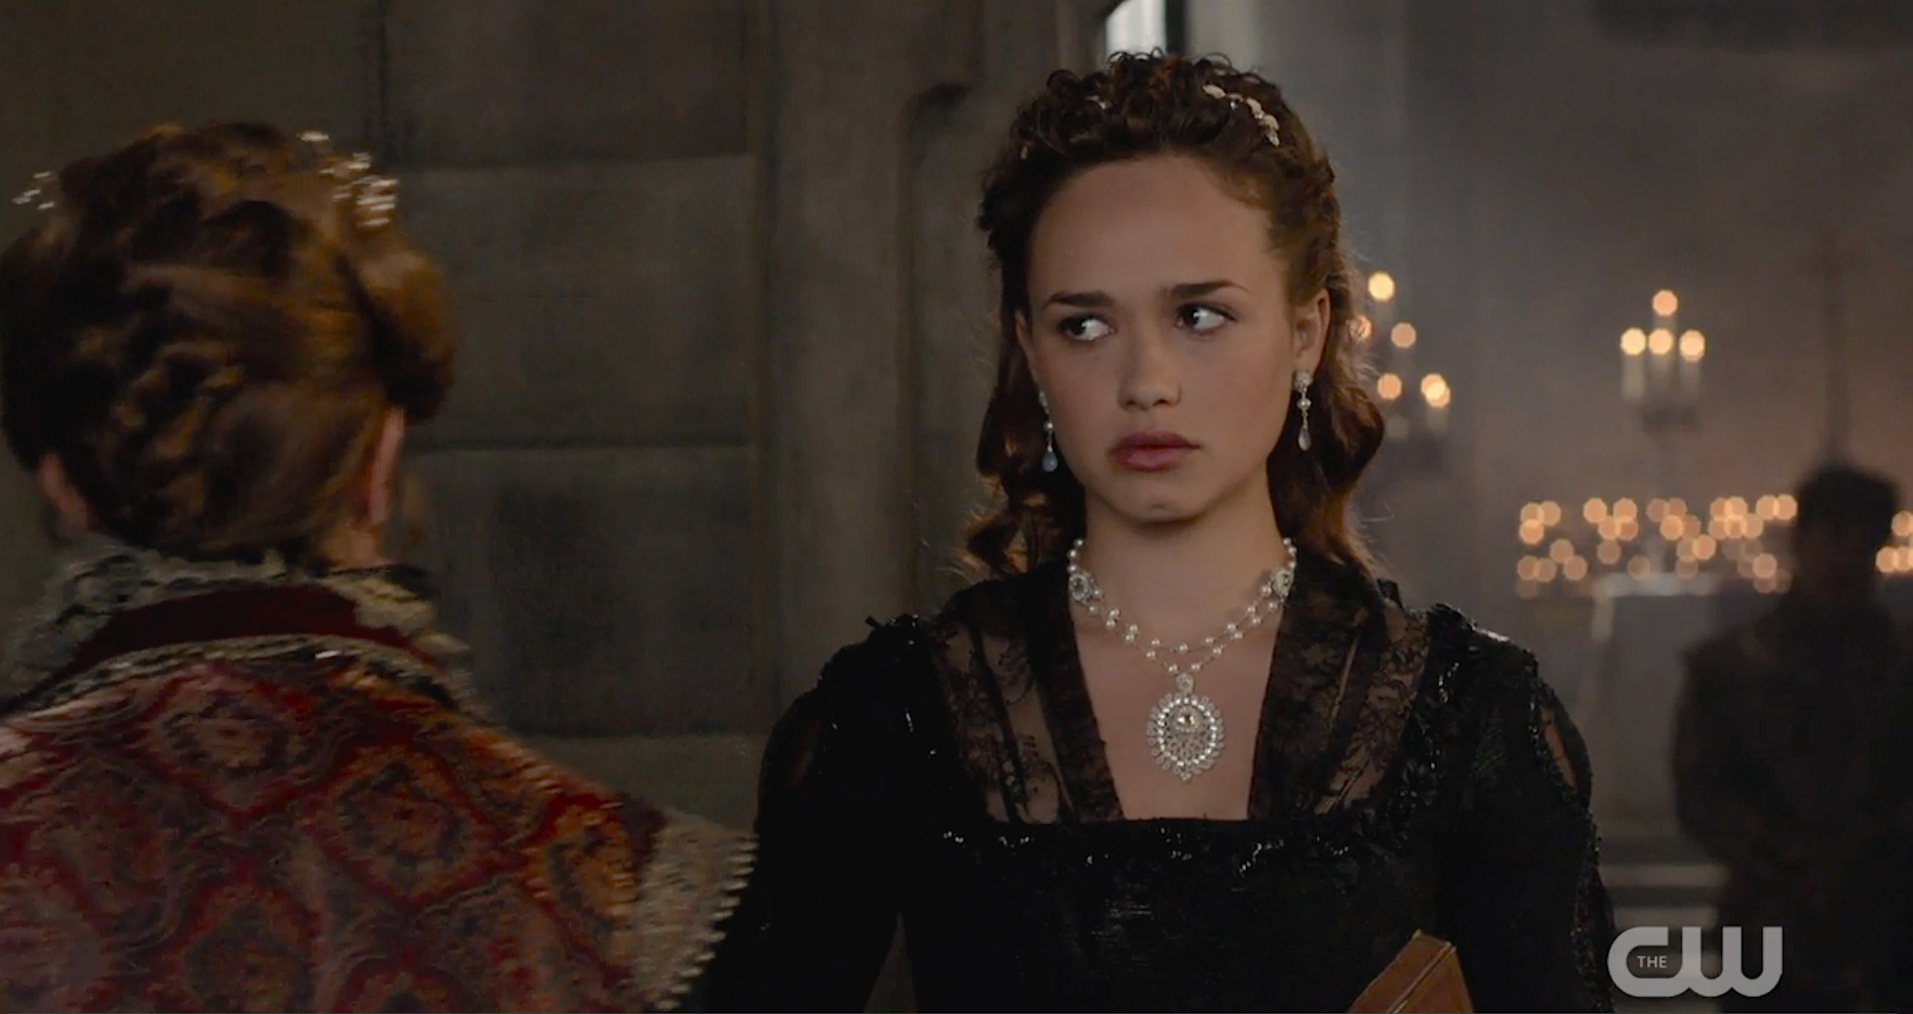 Edera 'Lilliane' necklace and 'Fleurette' earrings featured on Reign.